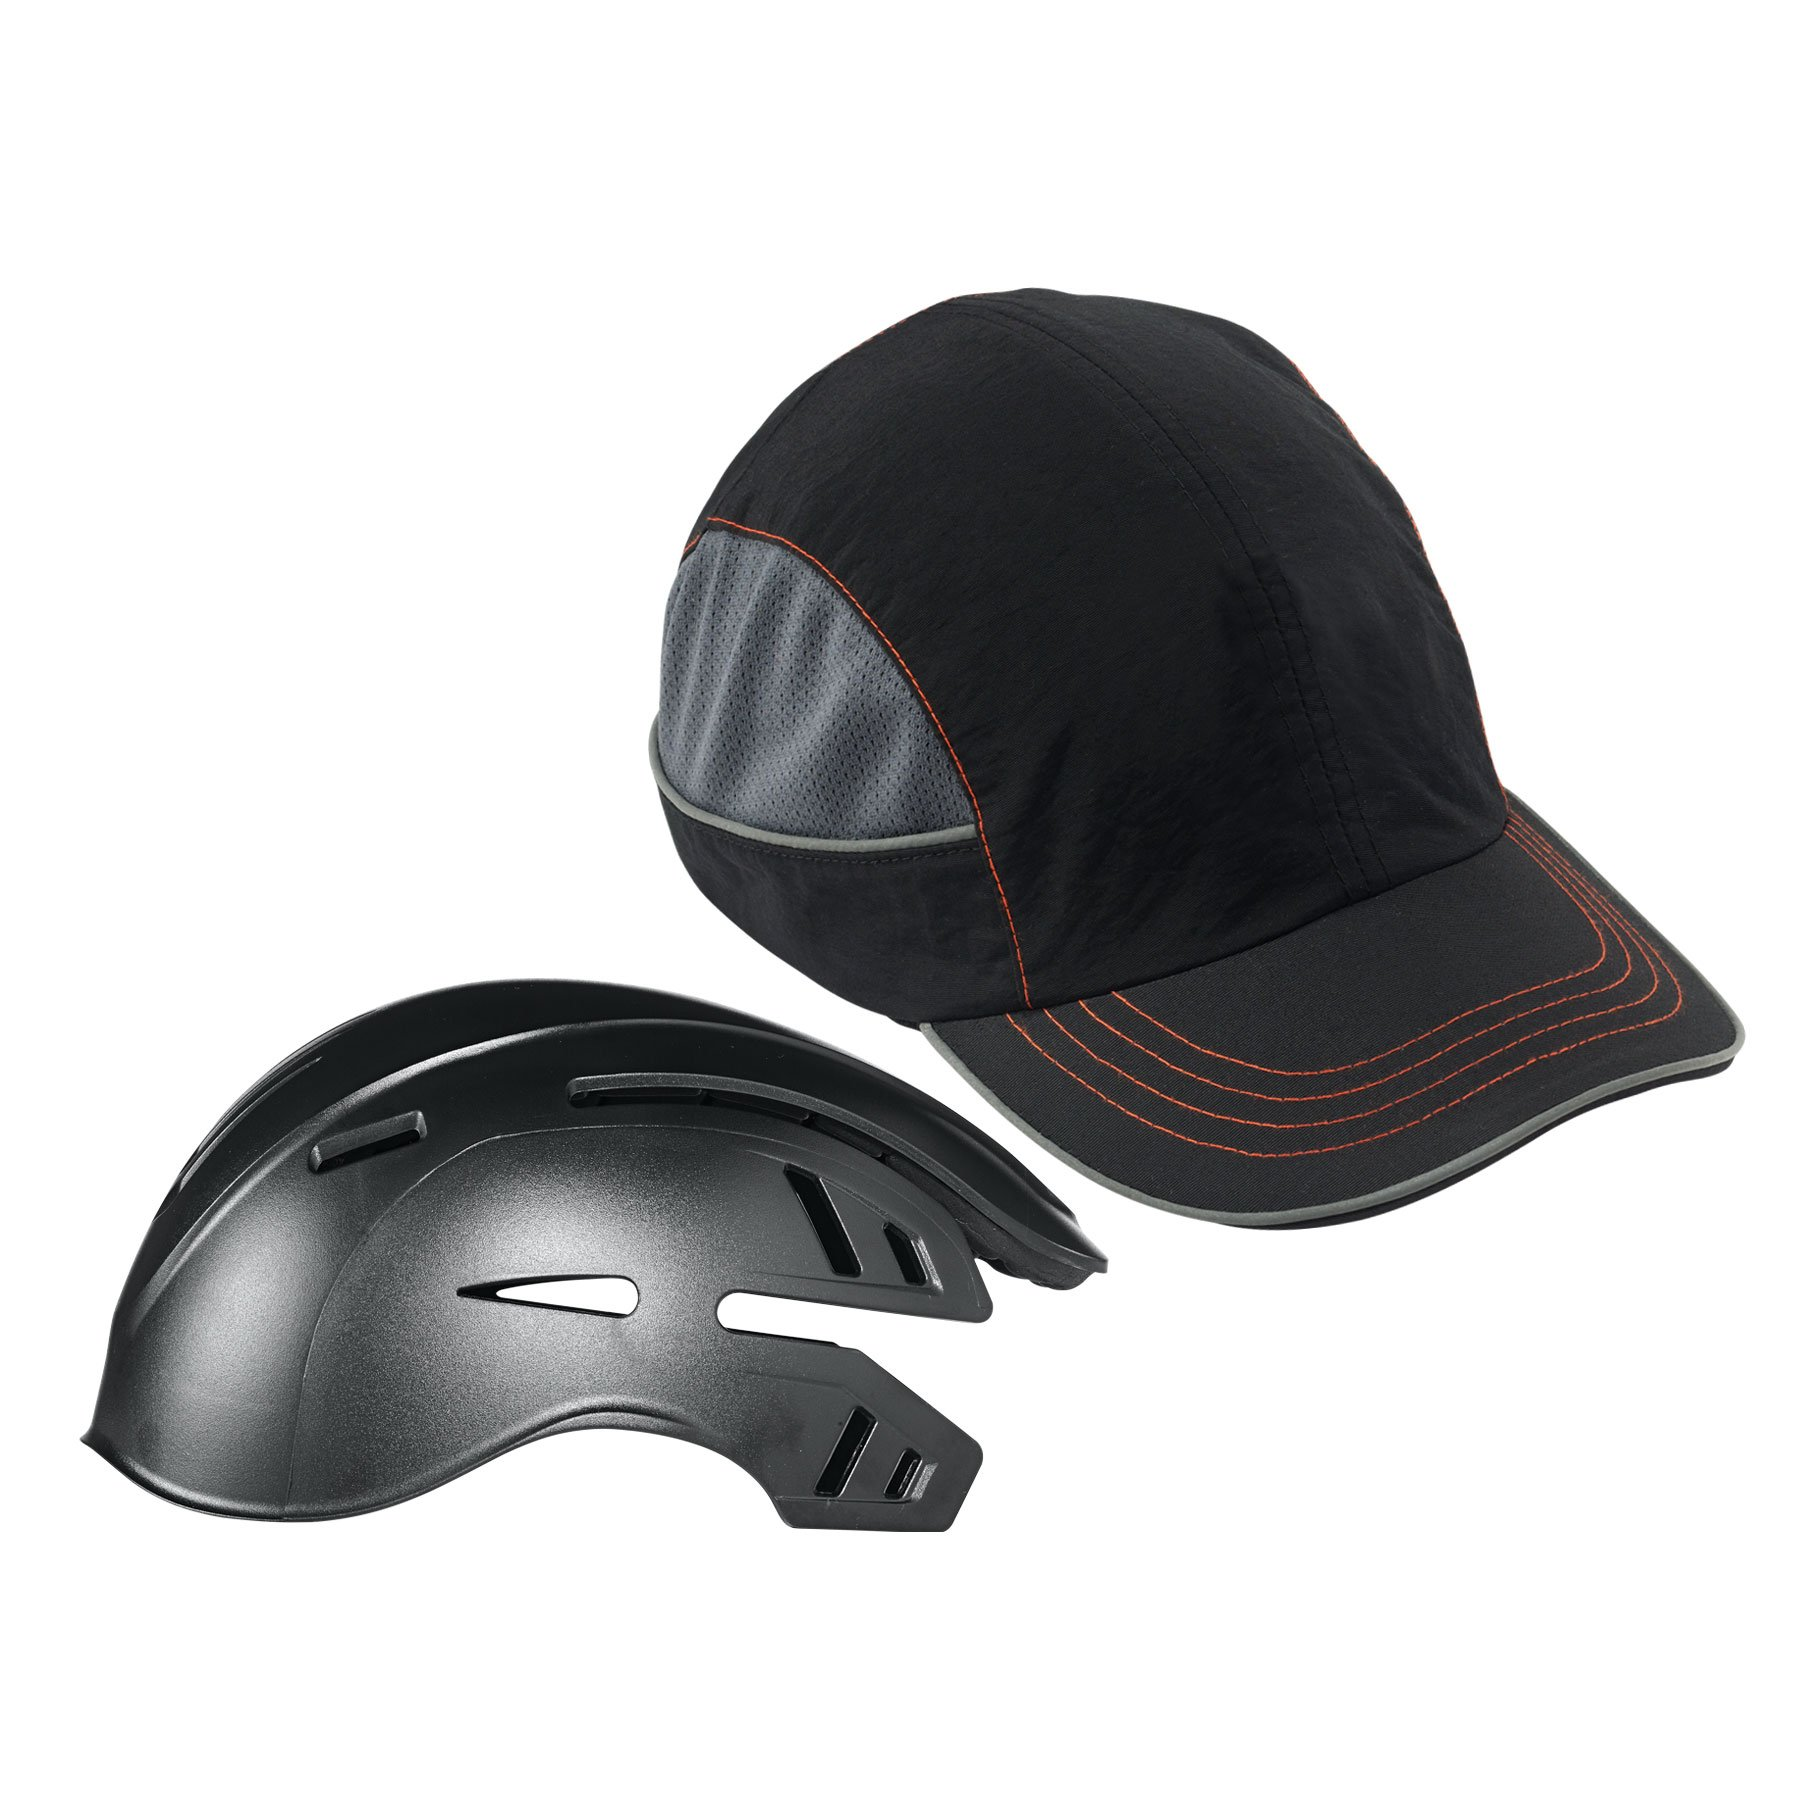 Safety Bump Cap, Baseball Hat Style, Breathable Head Protection, Long Brim, Skullerz 8950 by Ergodyne (Image #6)